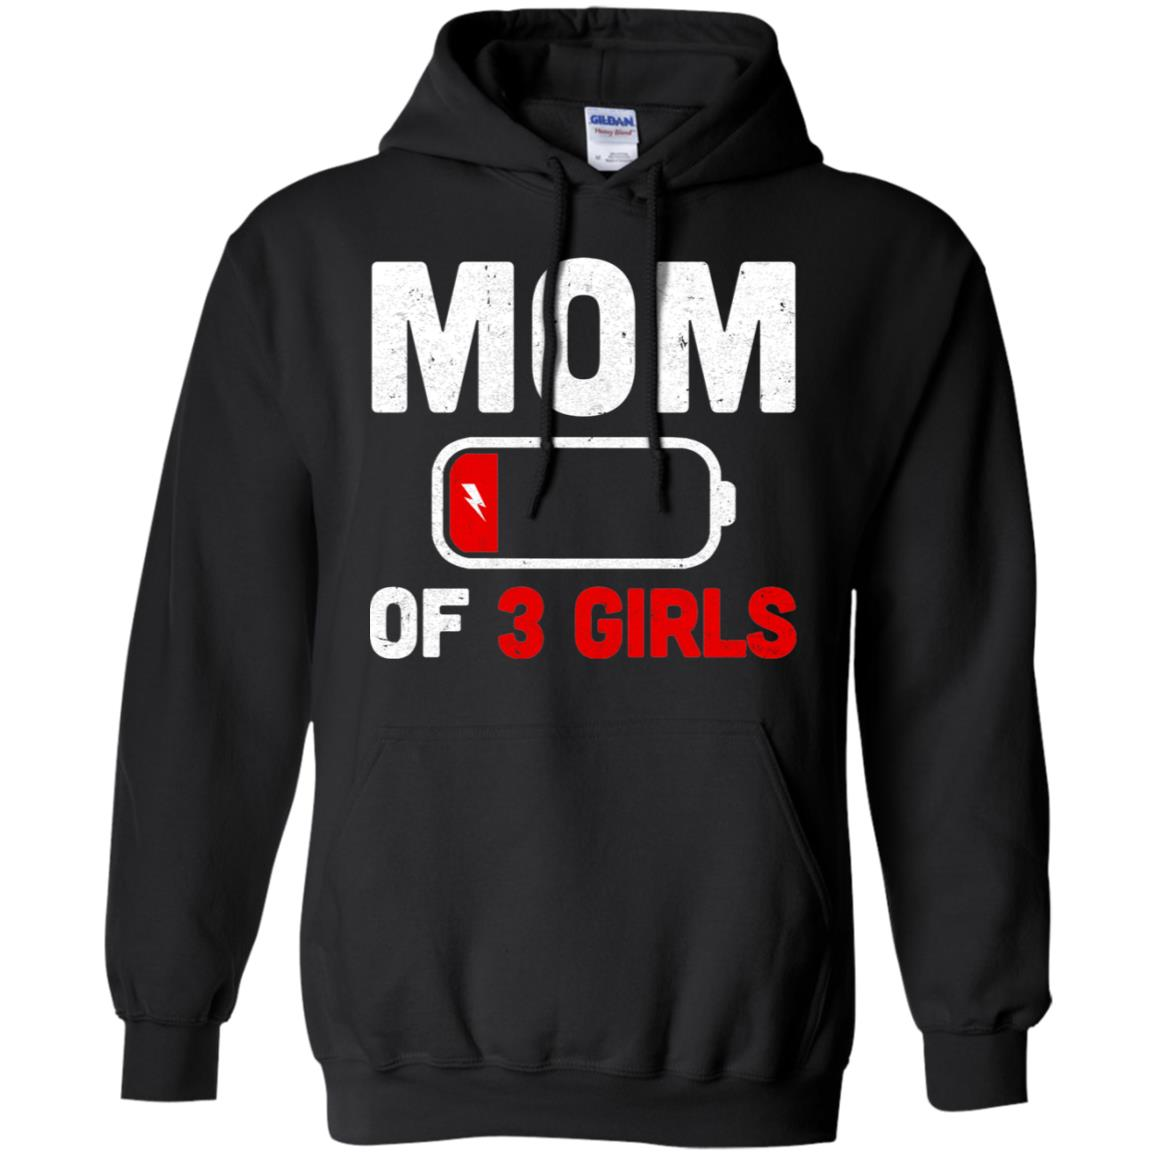 Funny Mom Of 3 Girls Mothers Day Gifts